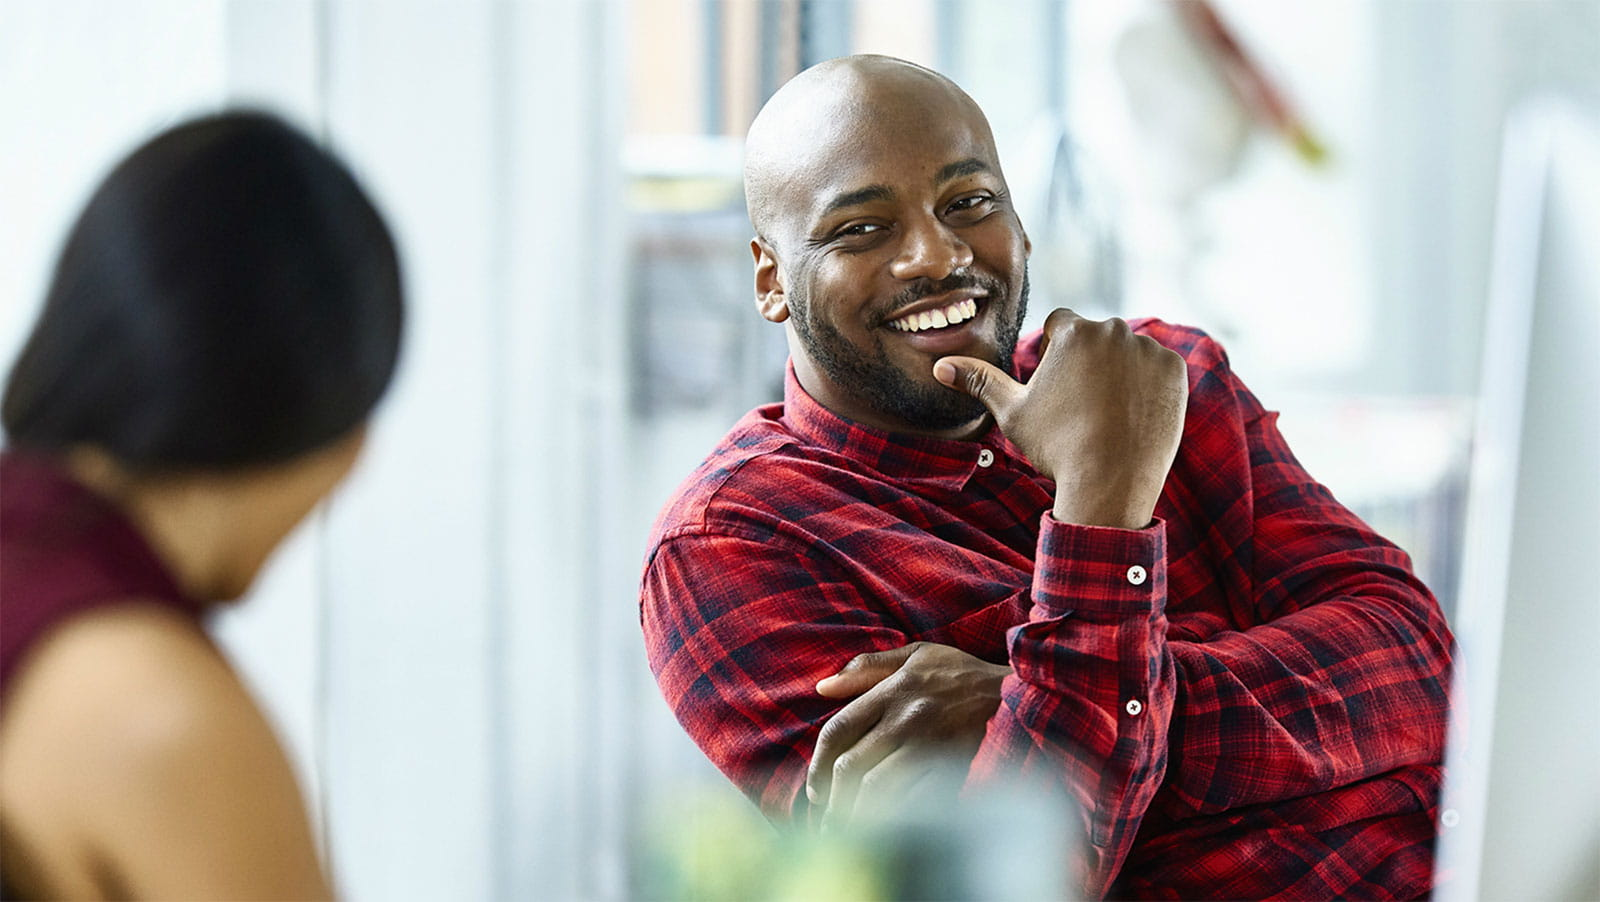 Smiling man making conversation in an office setting